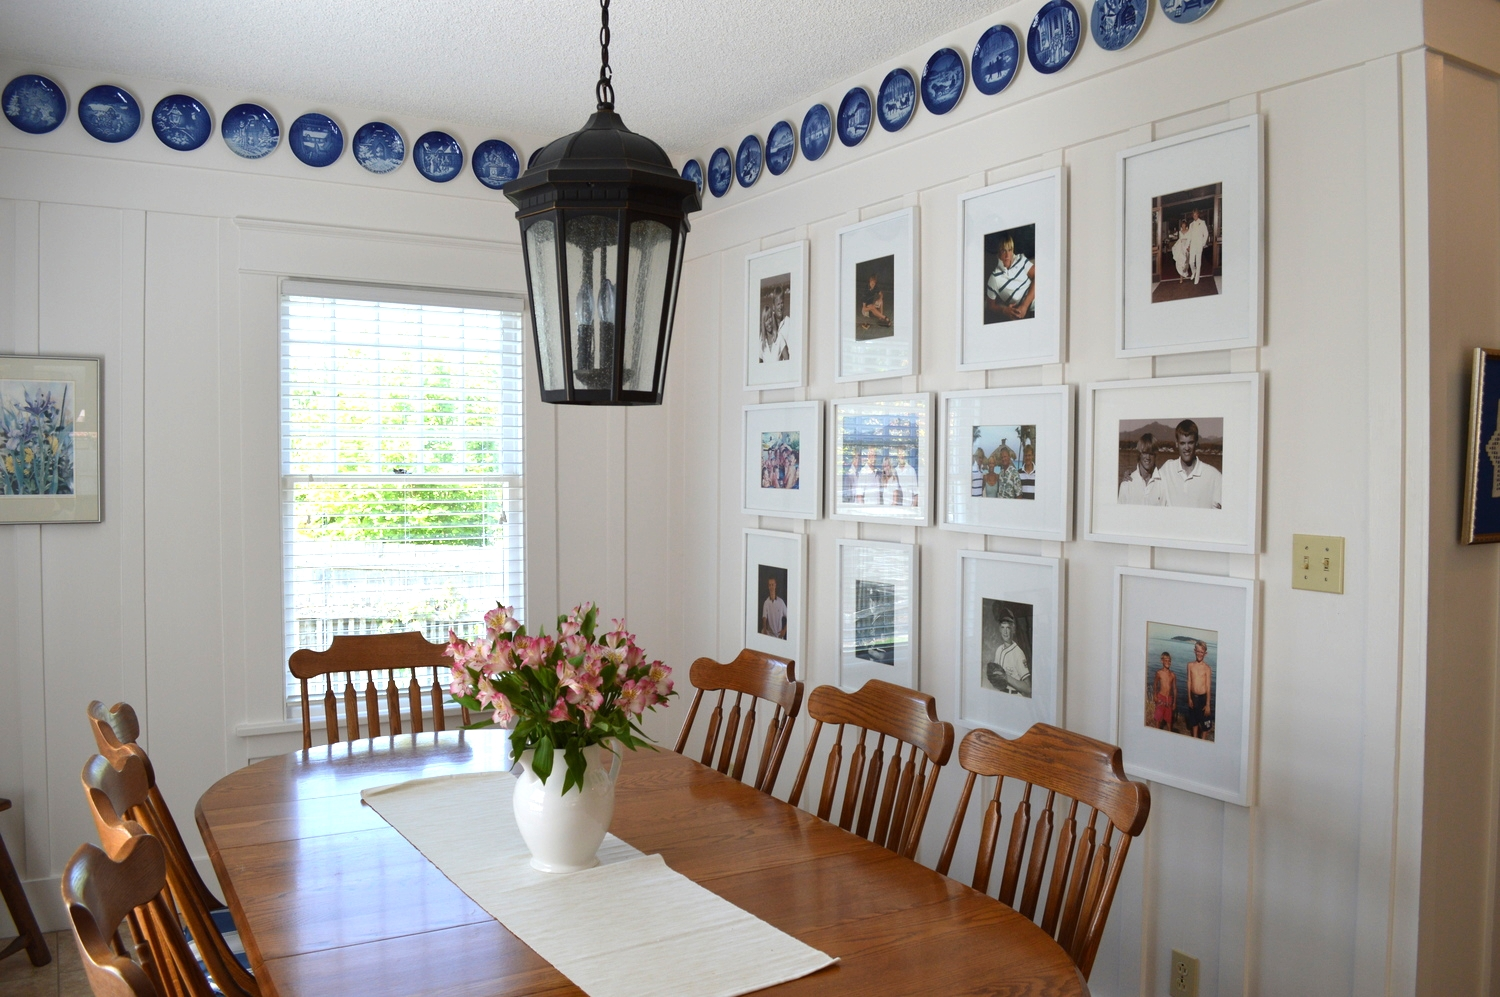 The light fixture came from Seattle Lighting and the frames for the photo wall are from Target...